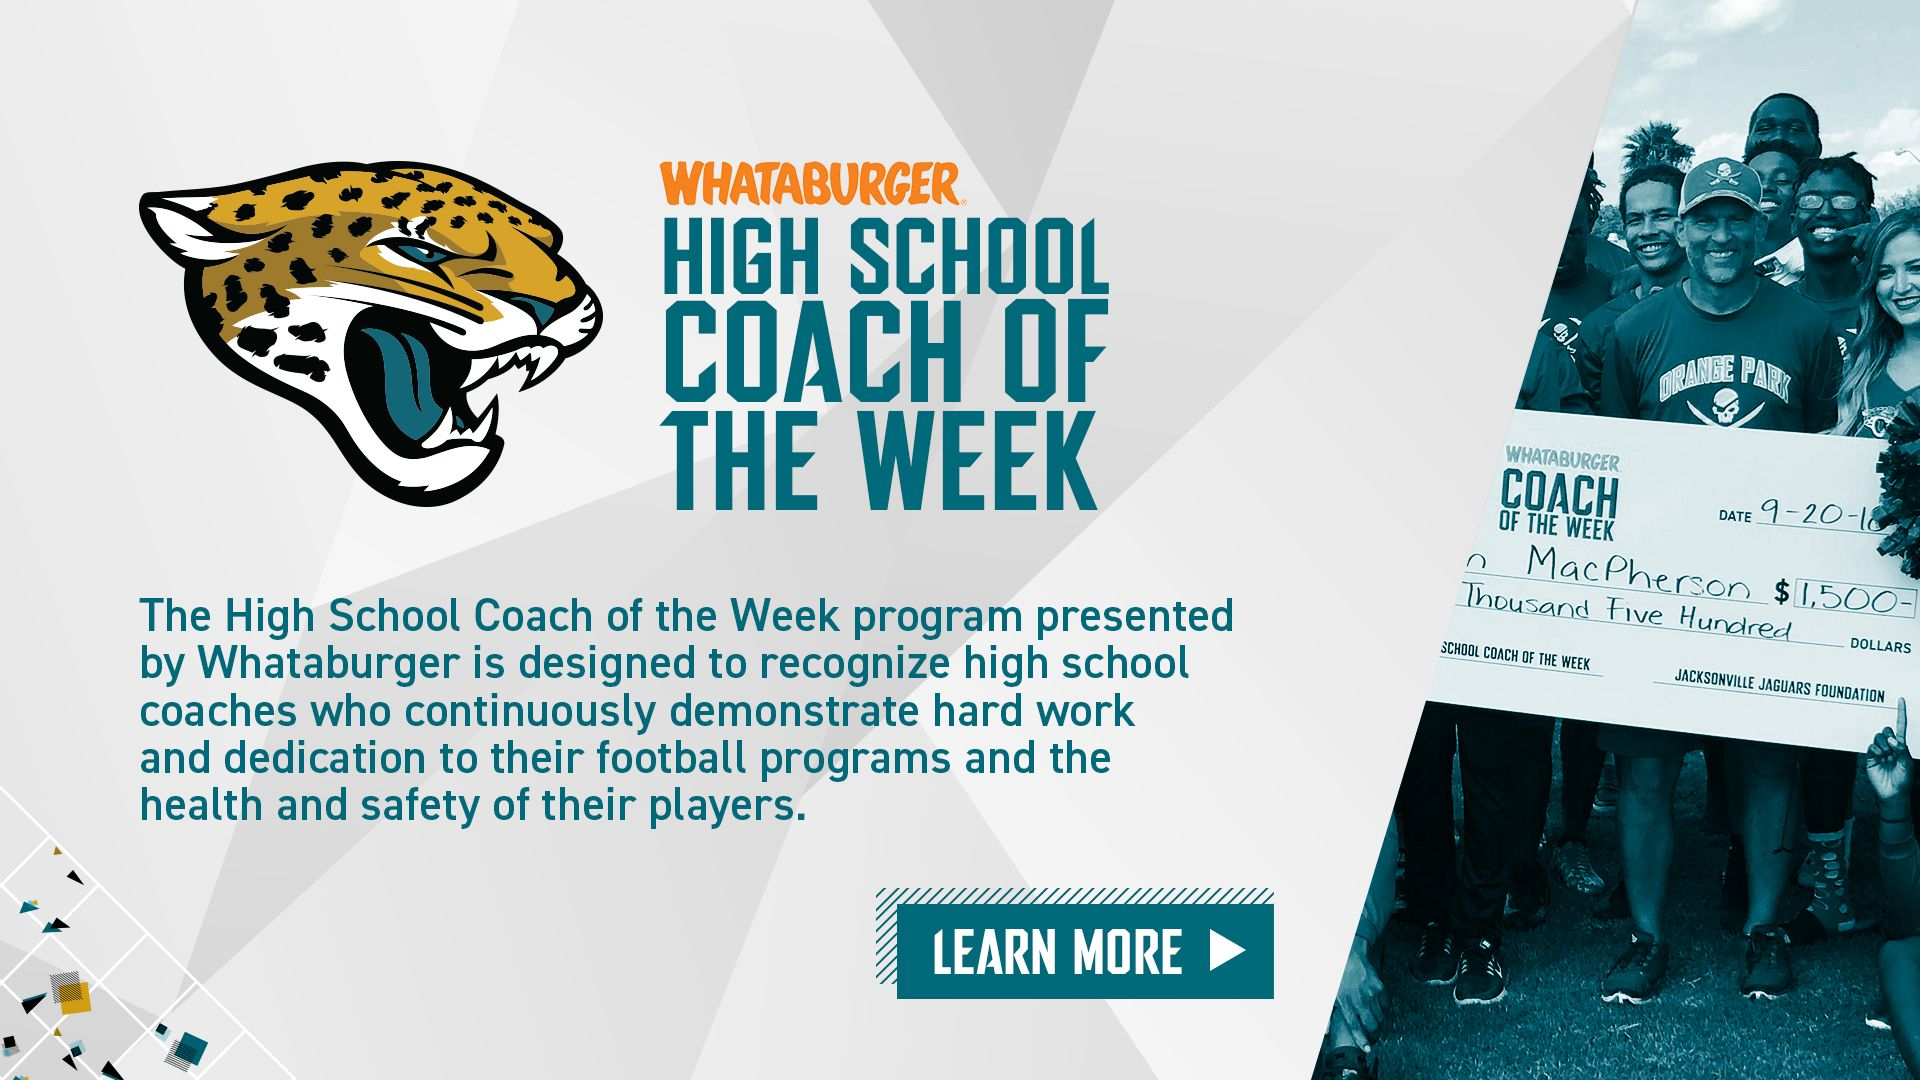 jags-coach-of-the-week-button-2